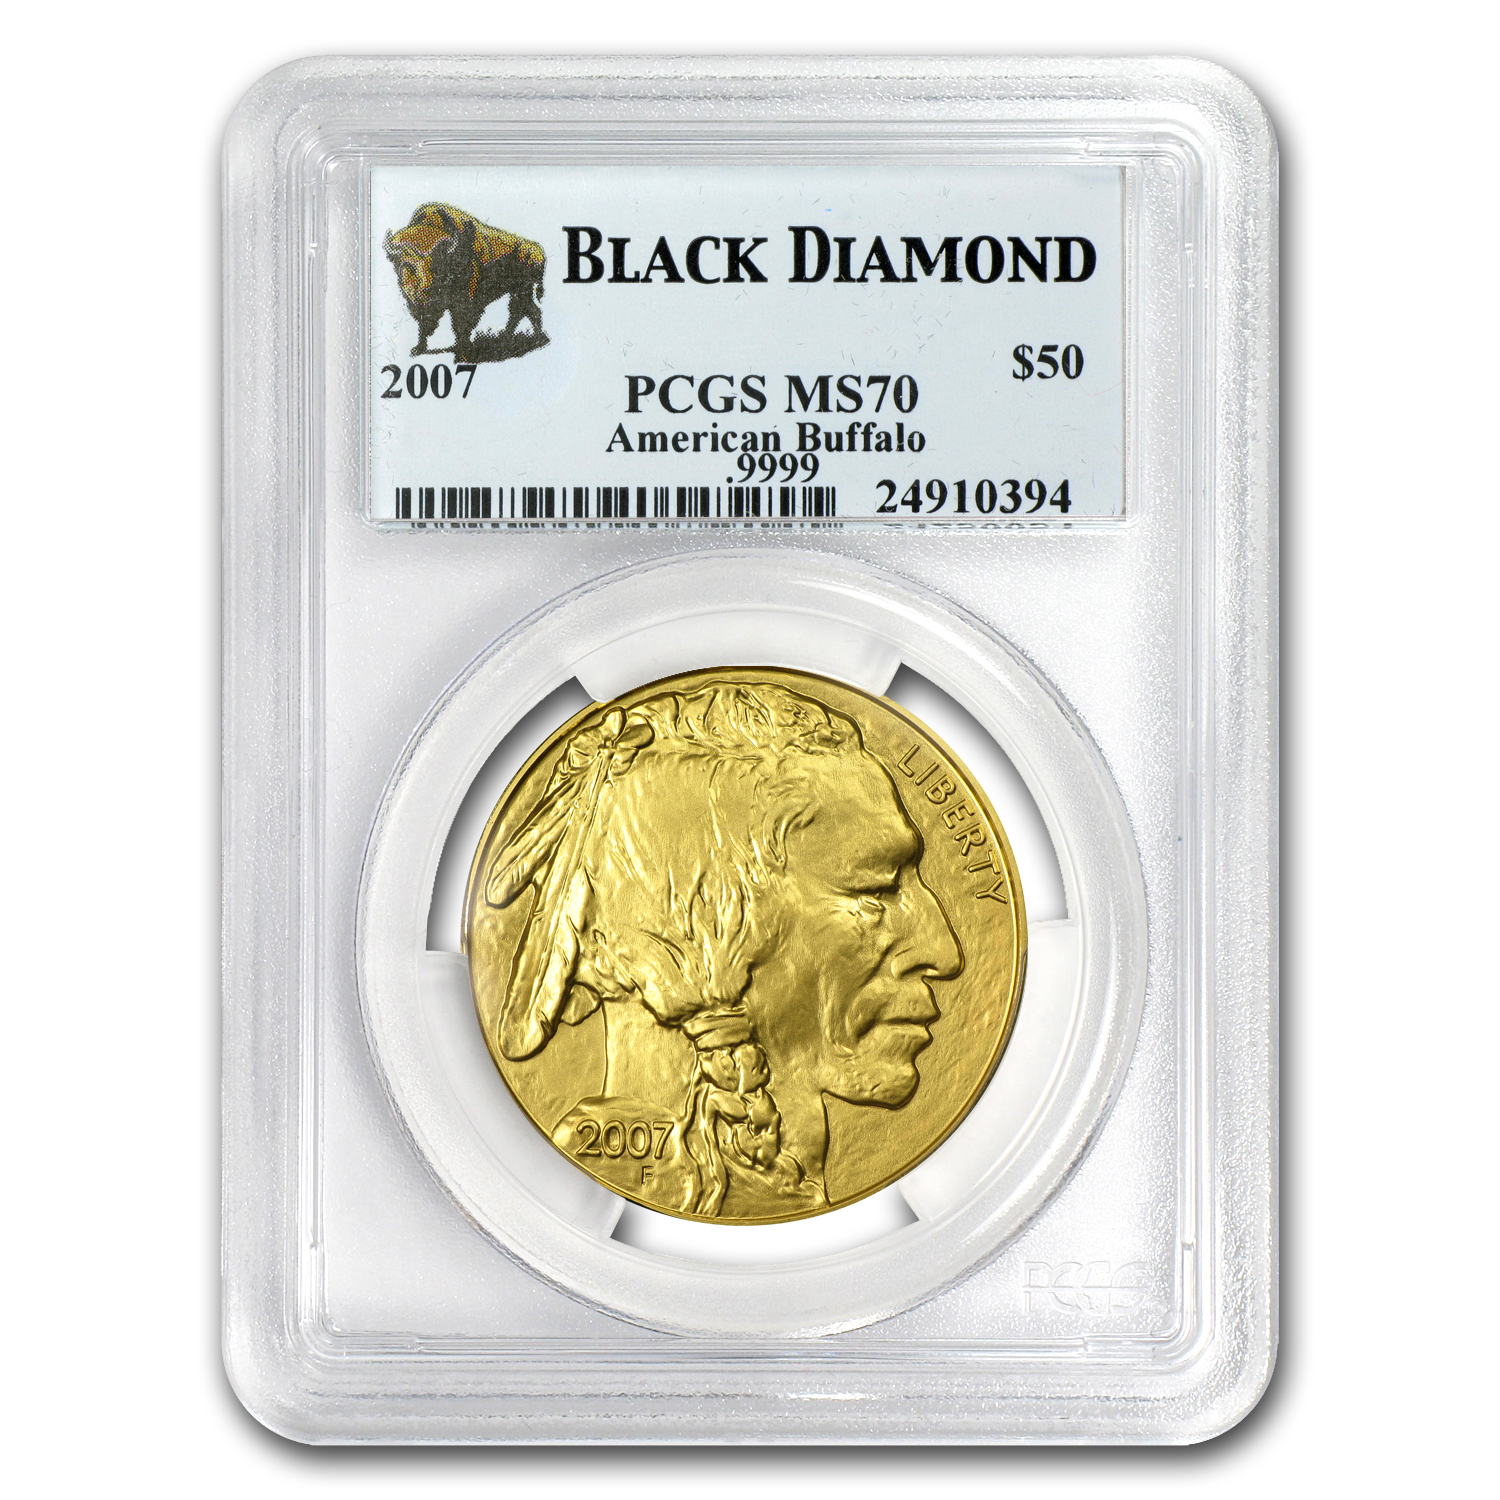 2006-2012 7-Coin 1 oz Gold Buffalo Set MS-70 PCGS (Black Diamond)